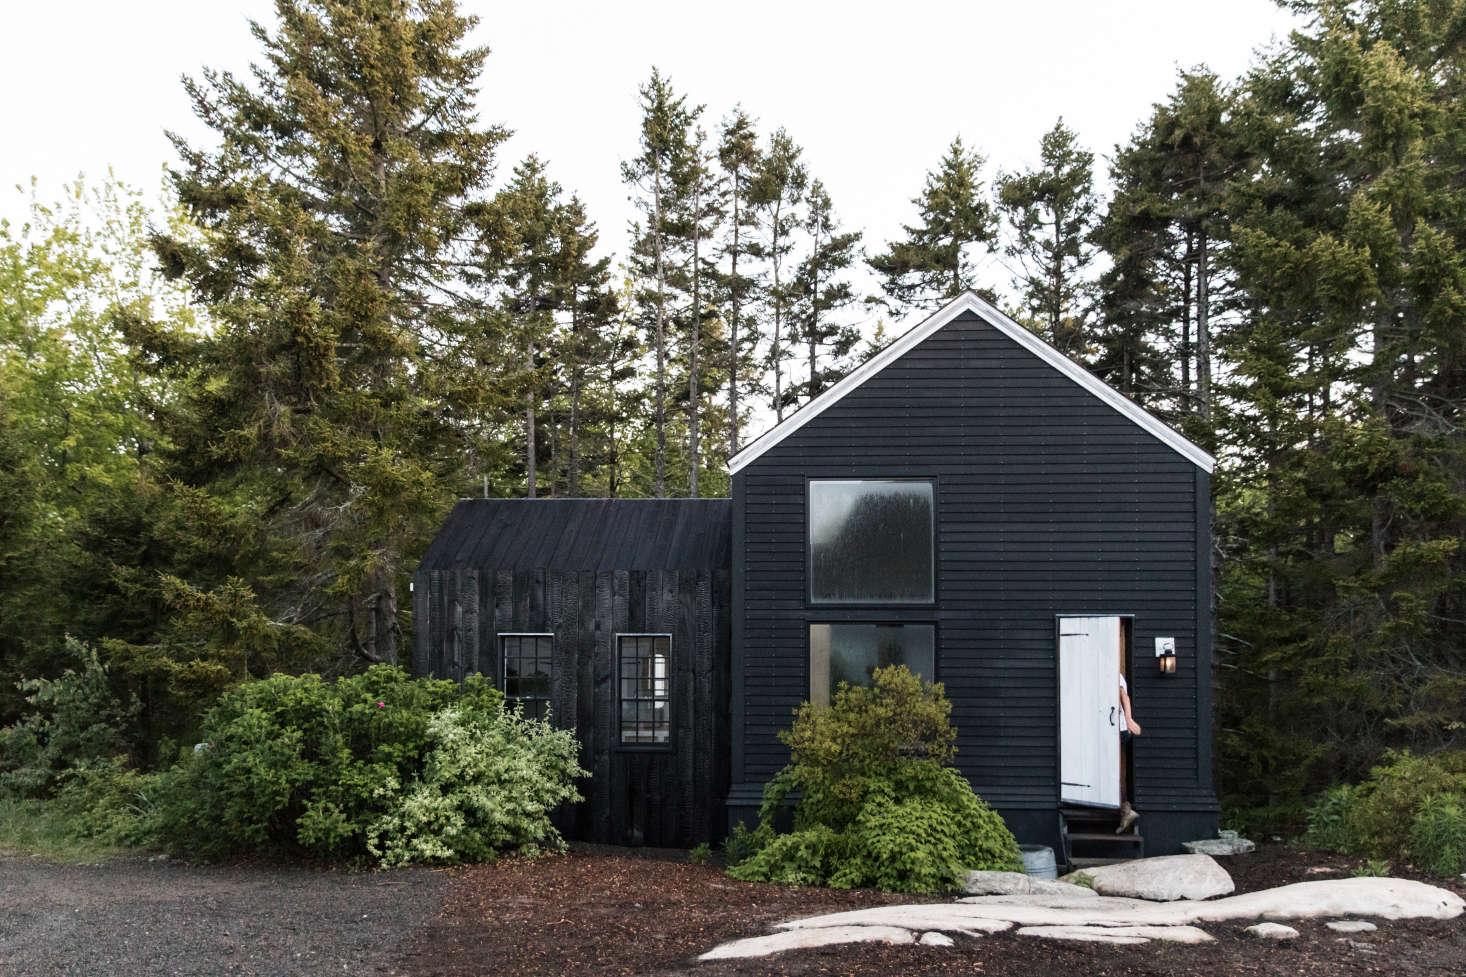 Houses blackened using the age-old technique of shou sugi ban have a texture and richness different from a coat of black paint. Photograph courtesy ofGreta Rybus, from The Soot House: Conjuring the Ghosts of Old New England on Spruce Head in Maine.